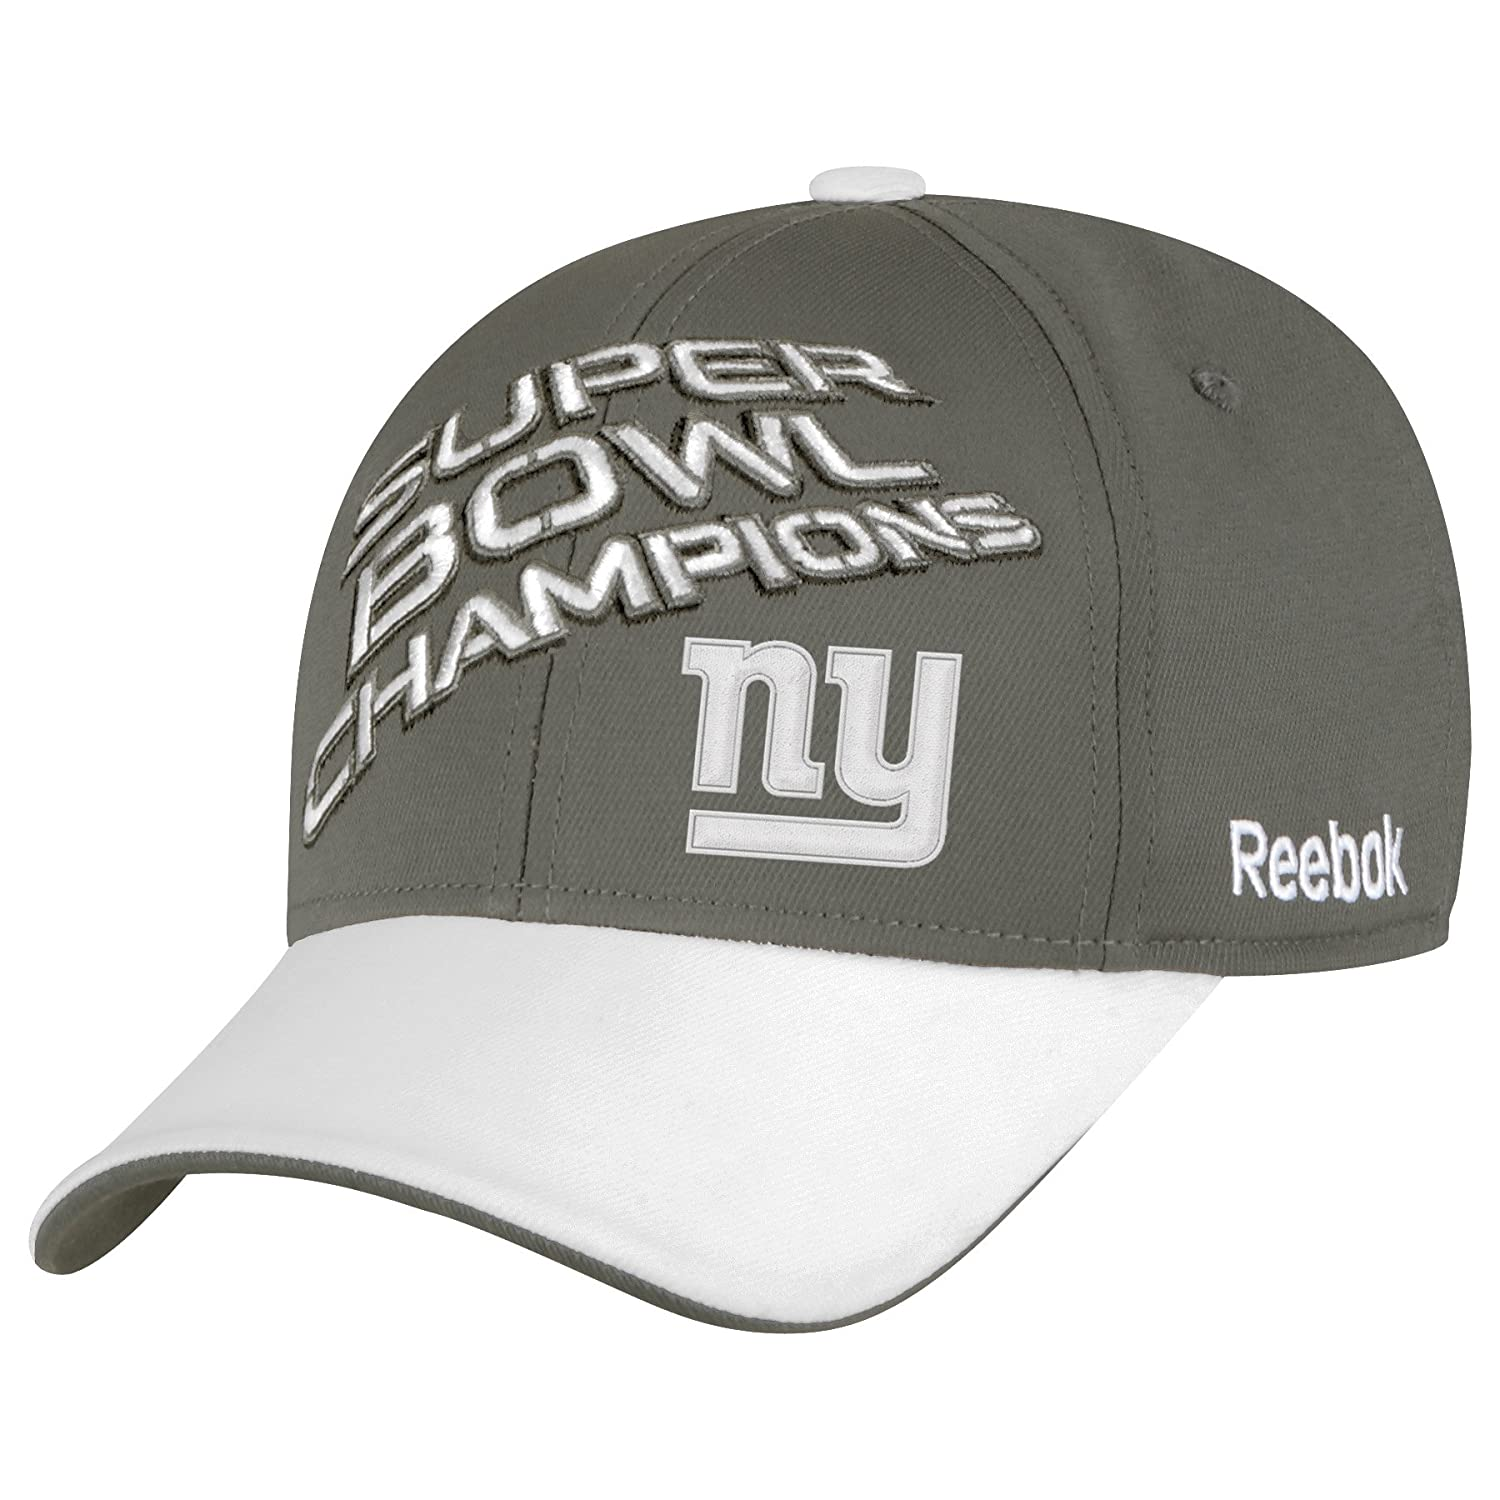 timeless design 45c2a 512c6 Amazon.com   NFL New York Giants Super Bowl XLVI Champions Official Locker  Room Hat, Charcoal Grey, One Size Fits All   Ny Giants   Clothing